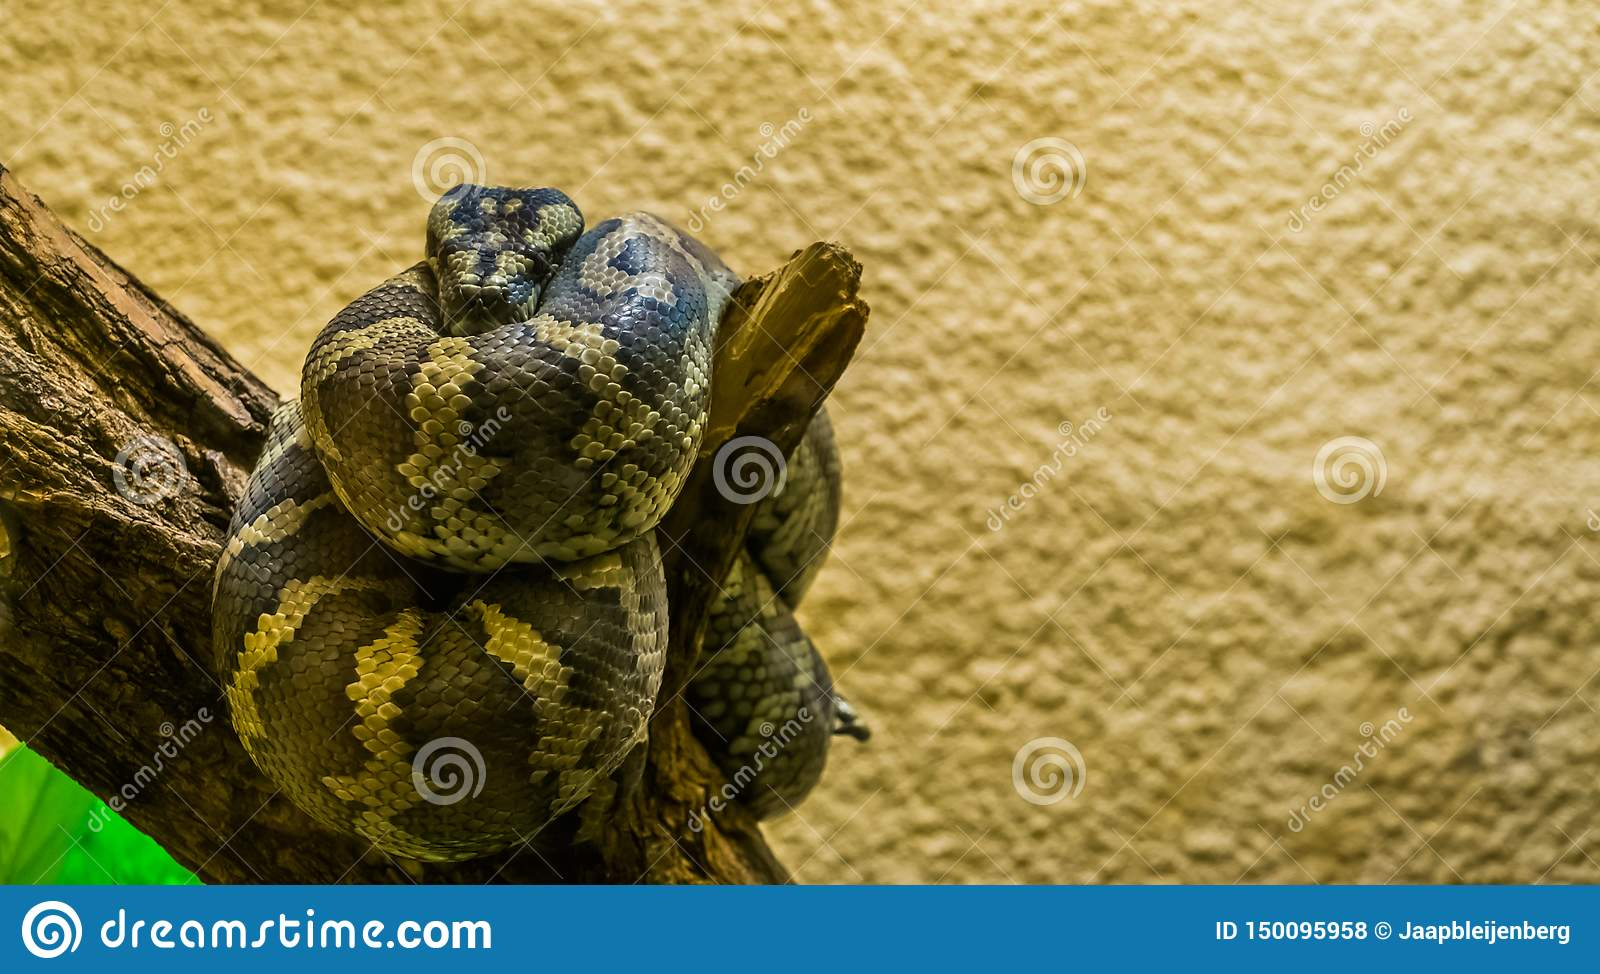 Portrait of a northwestern carpet python coiled up on a tree branch, tropical reptile from Australia